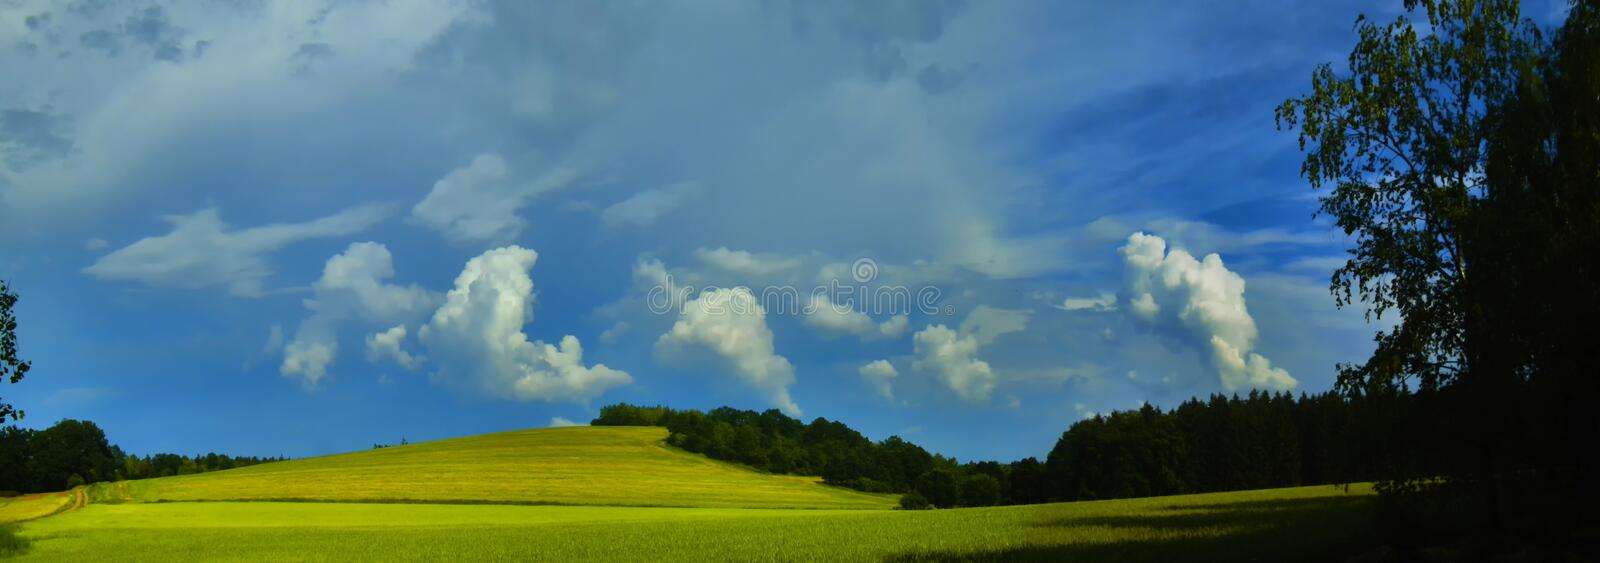 Scenic landscape with storm cloud in background over green agriculture fields. Tree and meadows at spring daylight. Dramatic storm clouds and sky.Relaxing royalty free stock images